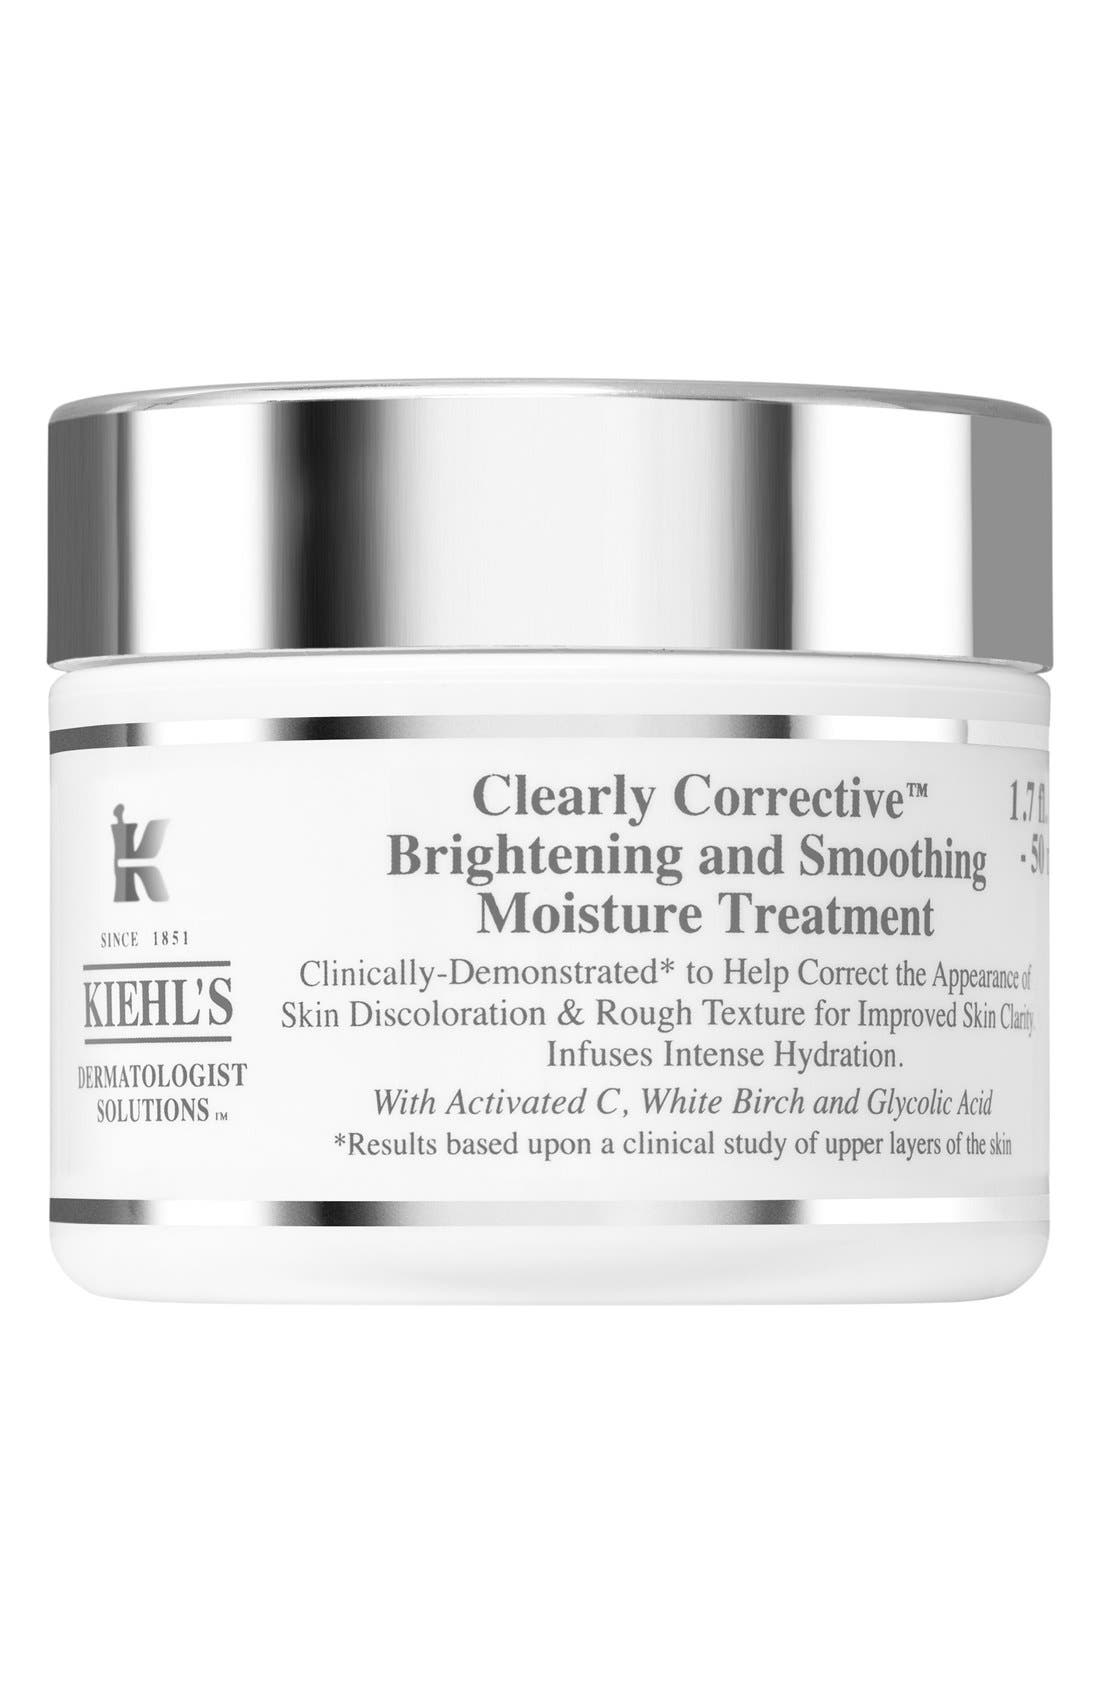 Kiehl's Since 1851 Clearly Corrective™ Brightening and Smoothing Treatment